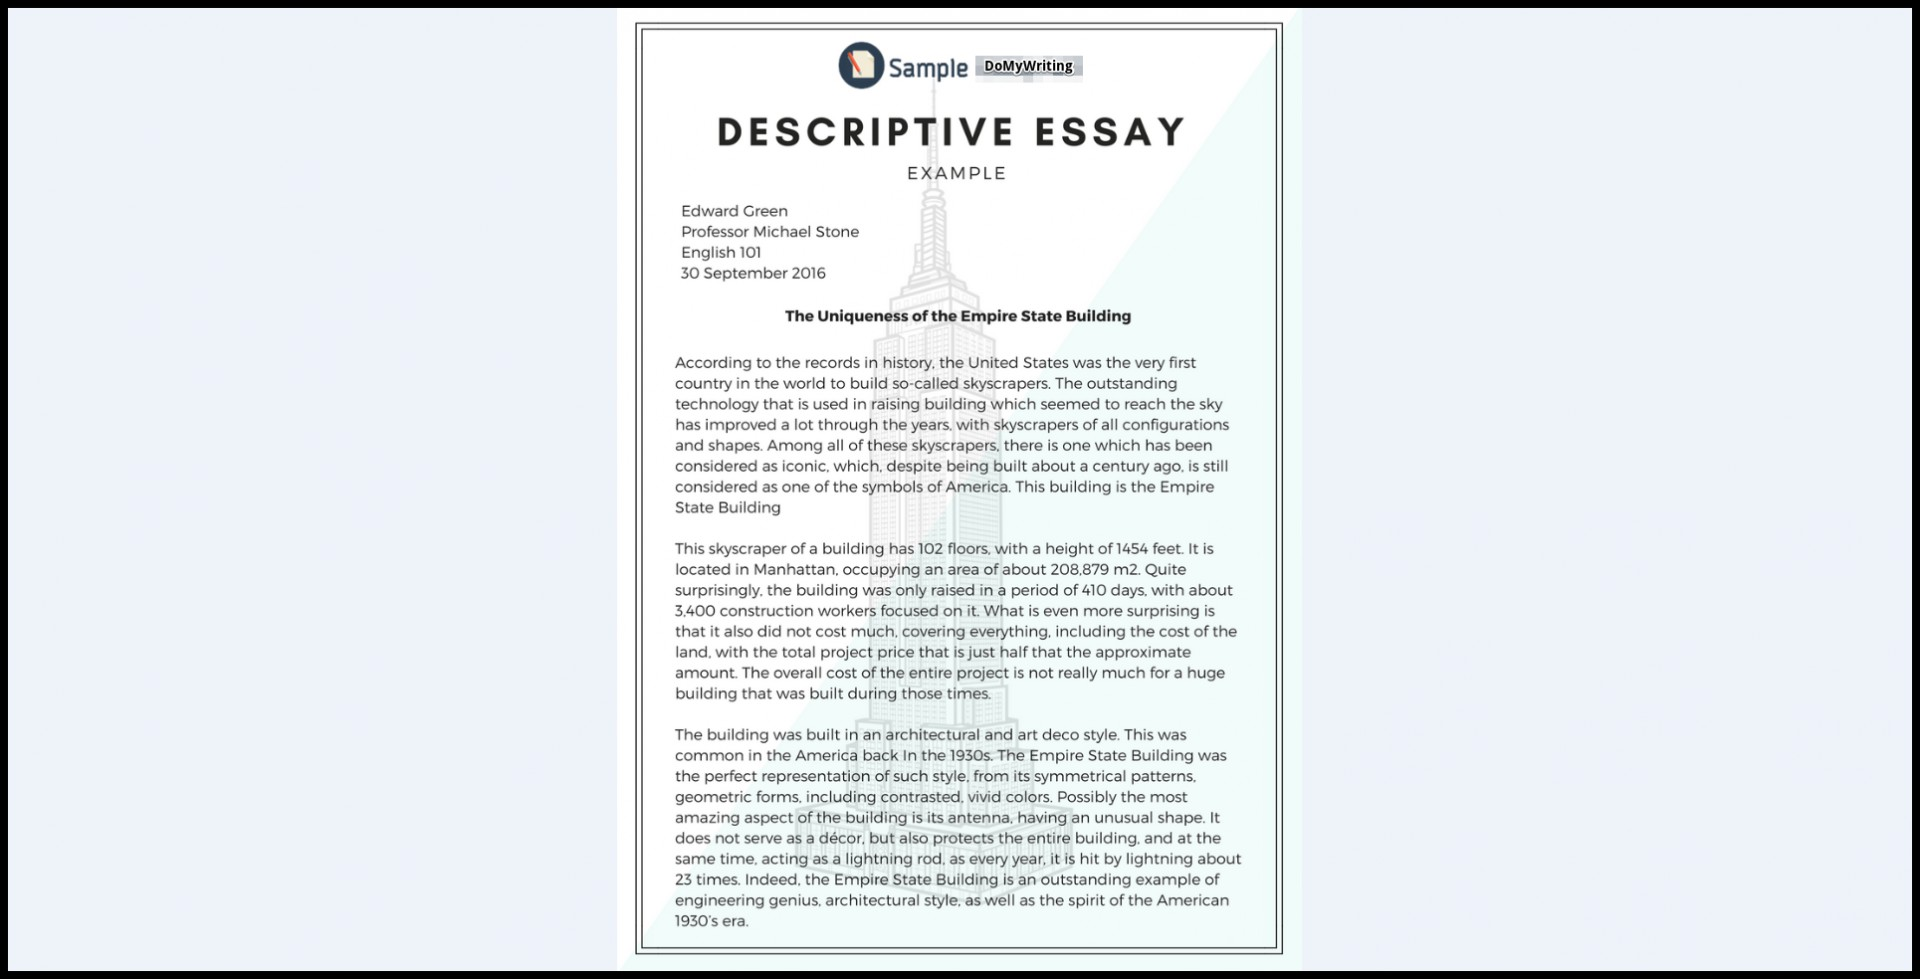 005 Essay Example Descriptive Impressive Outline Template Pdf Topics For Ibps Po Writing Format 1920